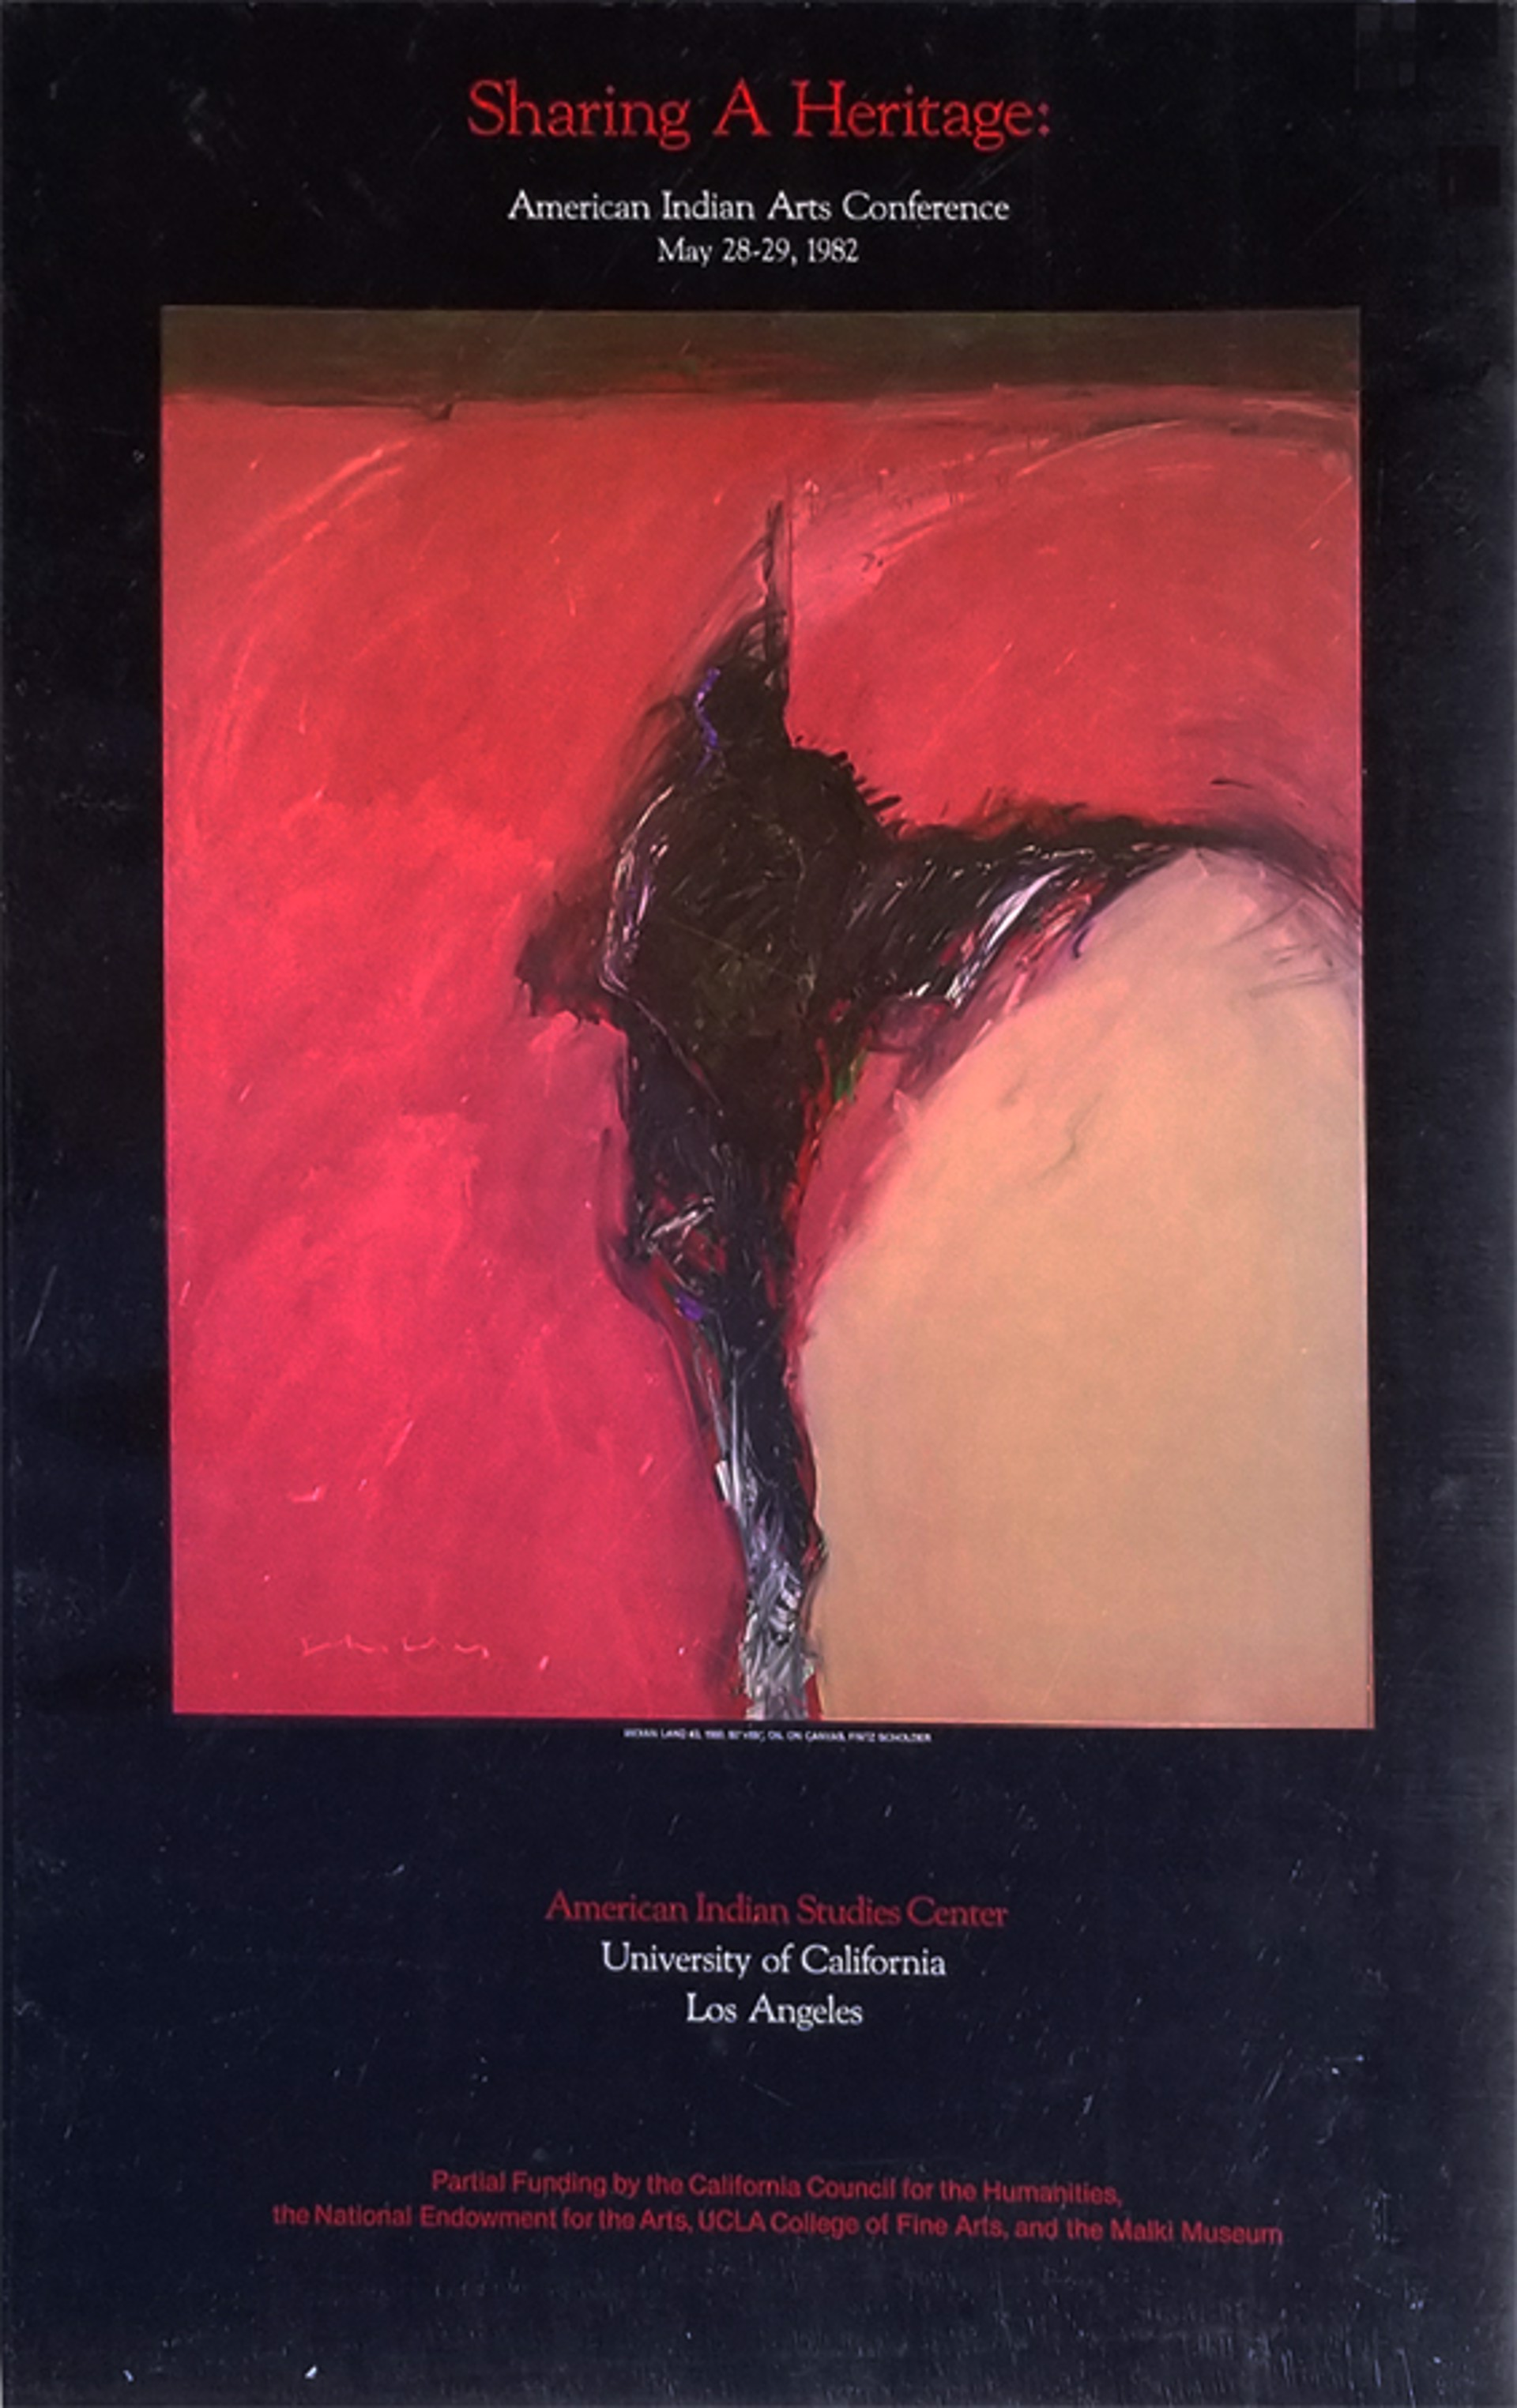 Sharing a Heritage Poster by Fritz Scholder